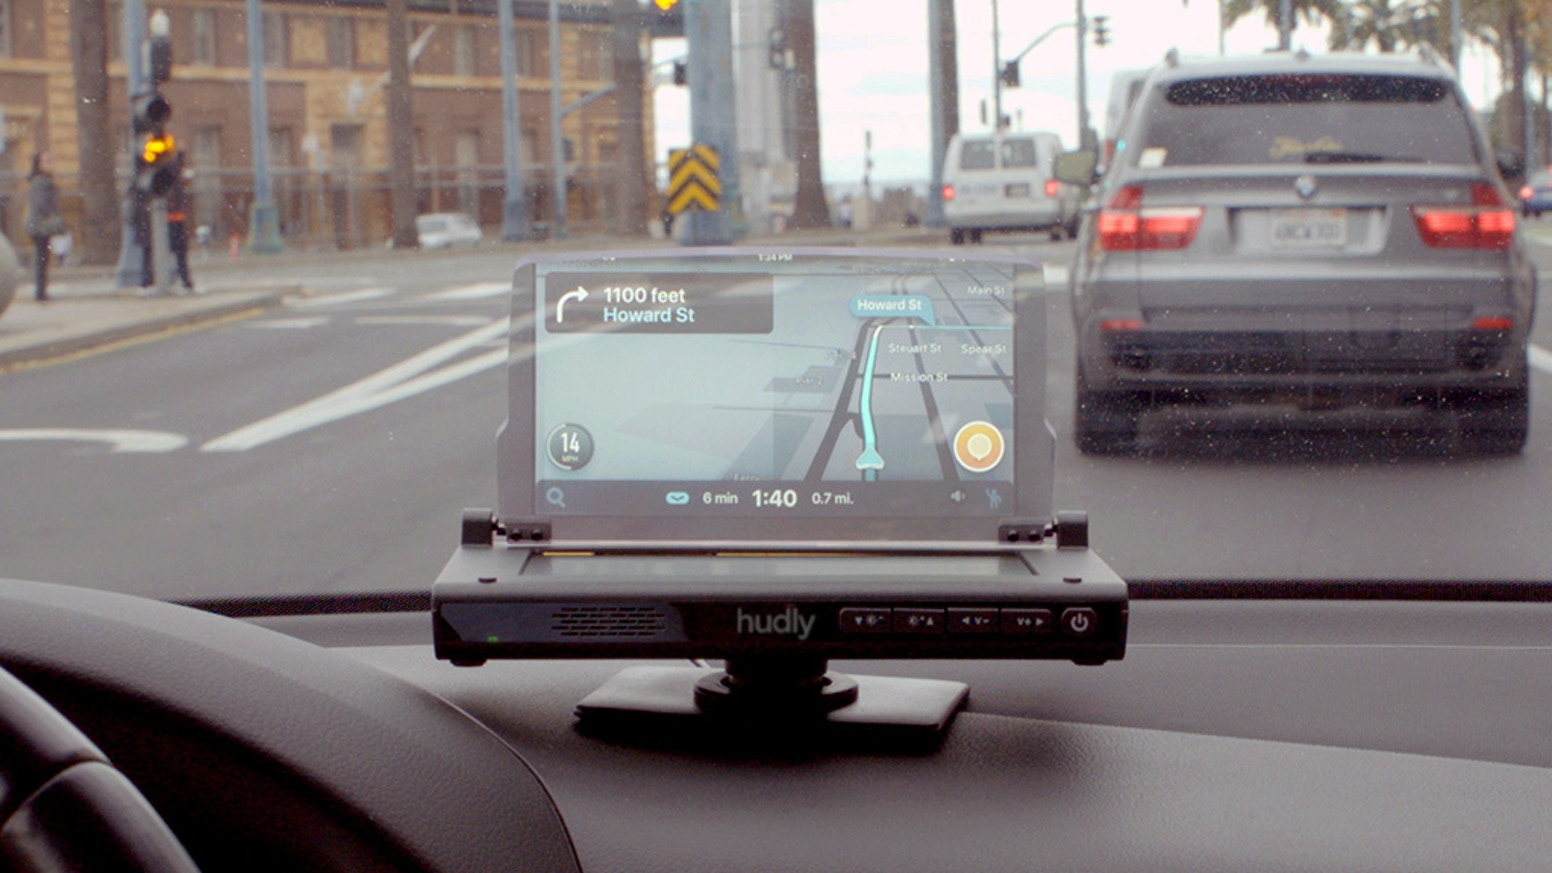 Hudly Wireless: Next Gen Head-Up Display For All Cars